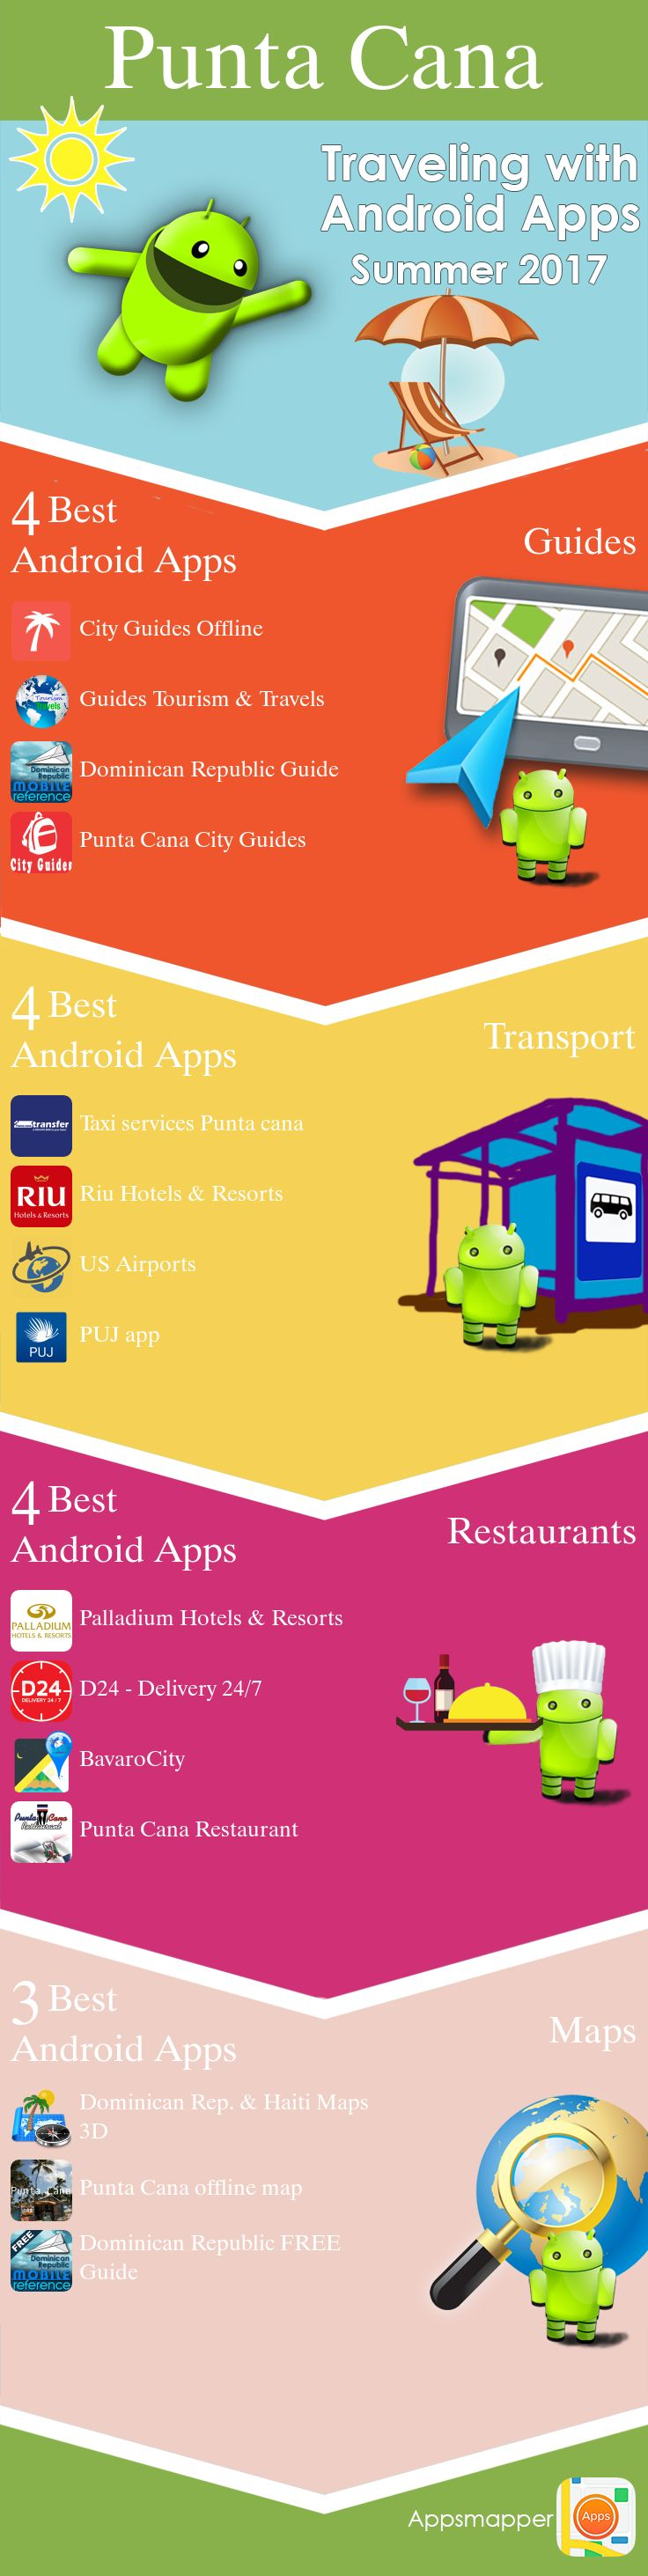 Punta Cana Android apps: Travel Guides, Maps, Transportation, Biking, Museums, Parking, Sport and apps for Students.